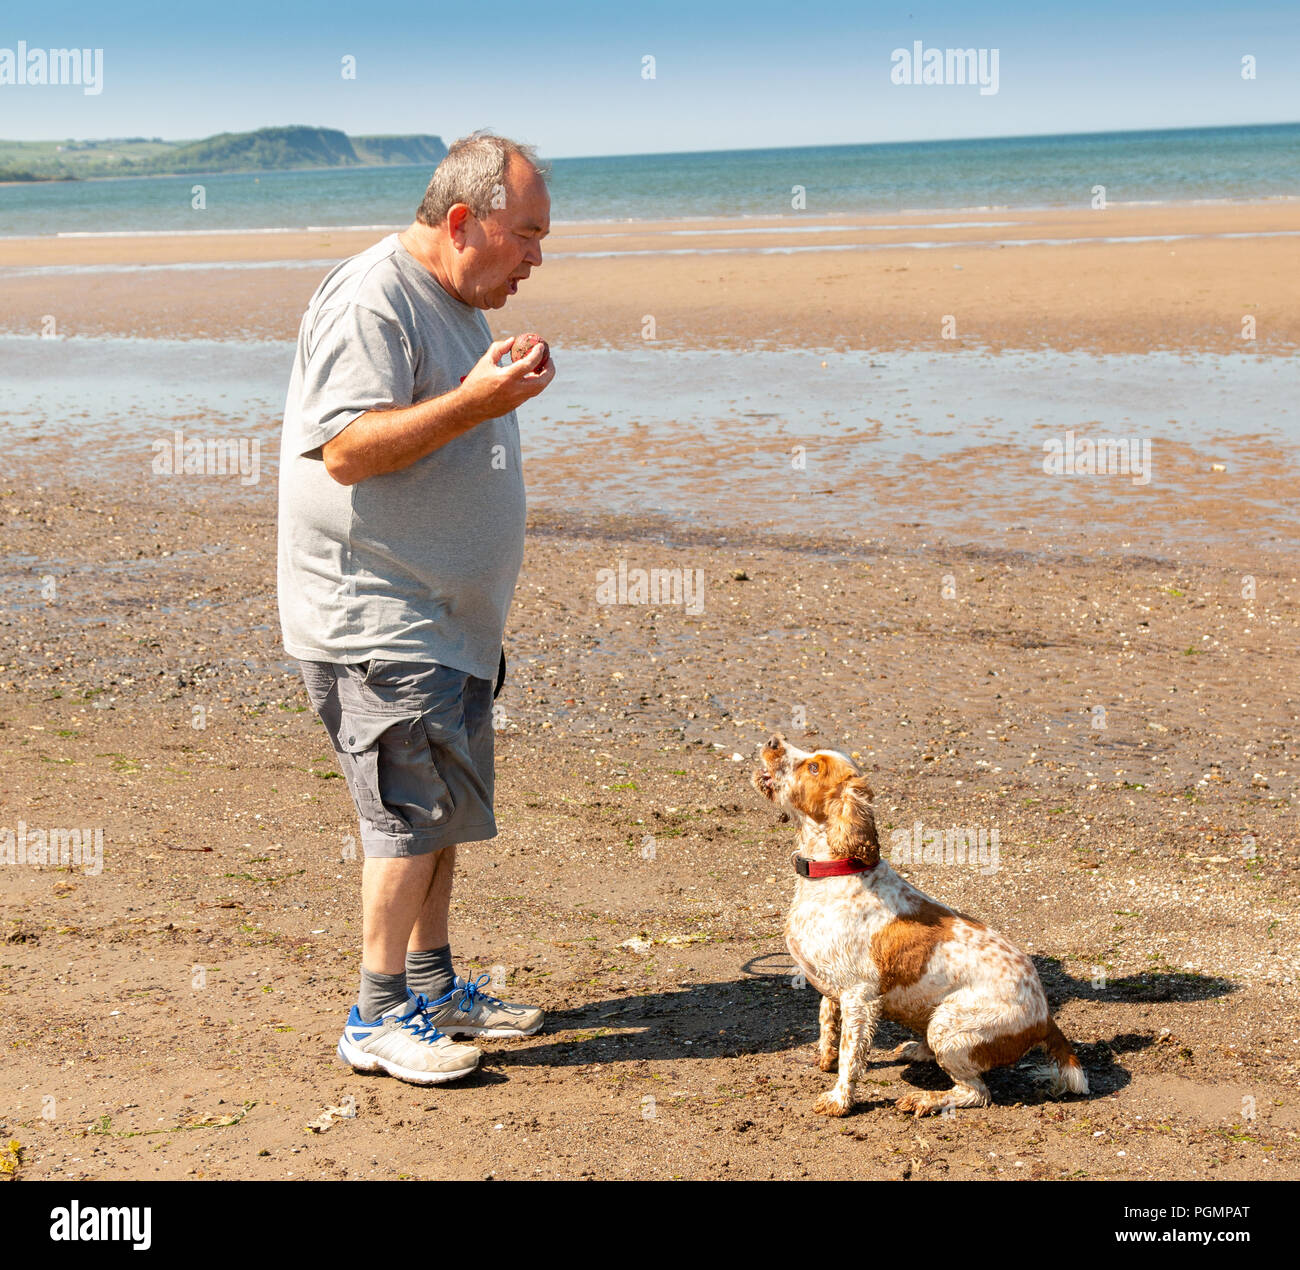 Man with happy cocker spaniel dog playing   on beach , Ayr, a popular seaside resort in South Ayrshire, Scotland, UK - Stock Image